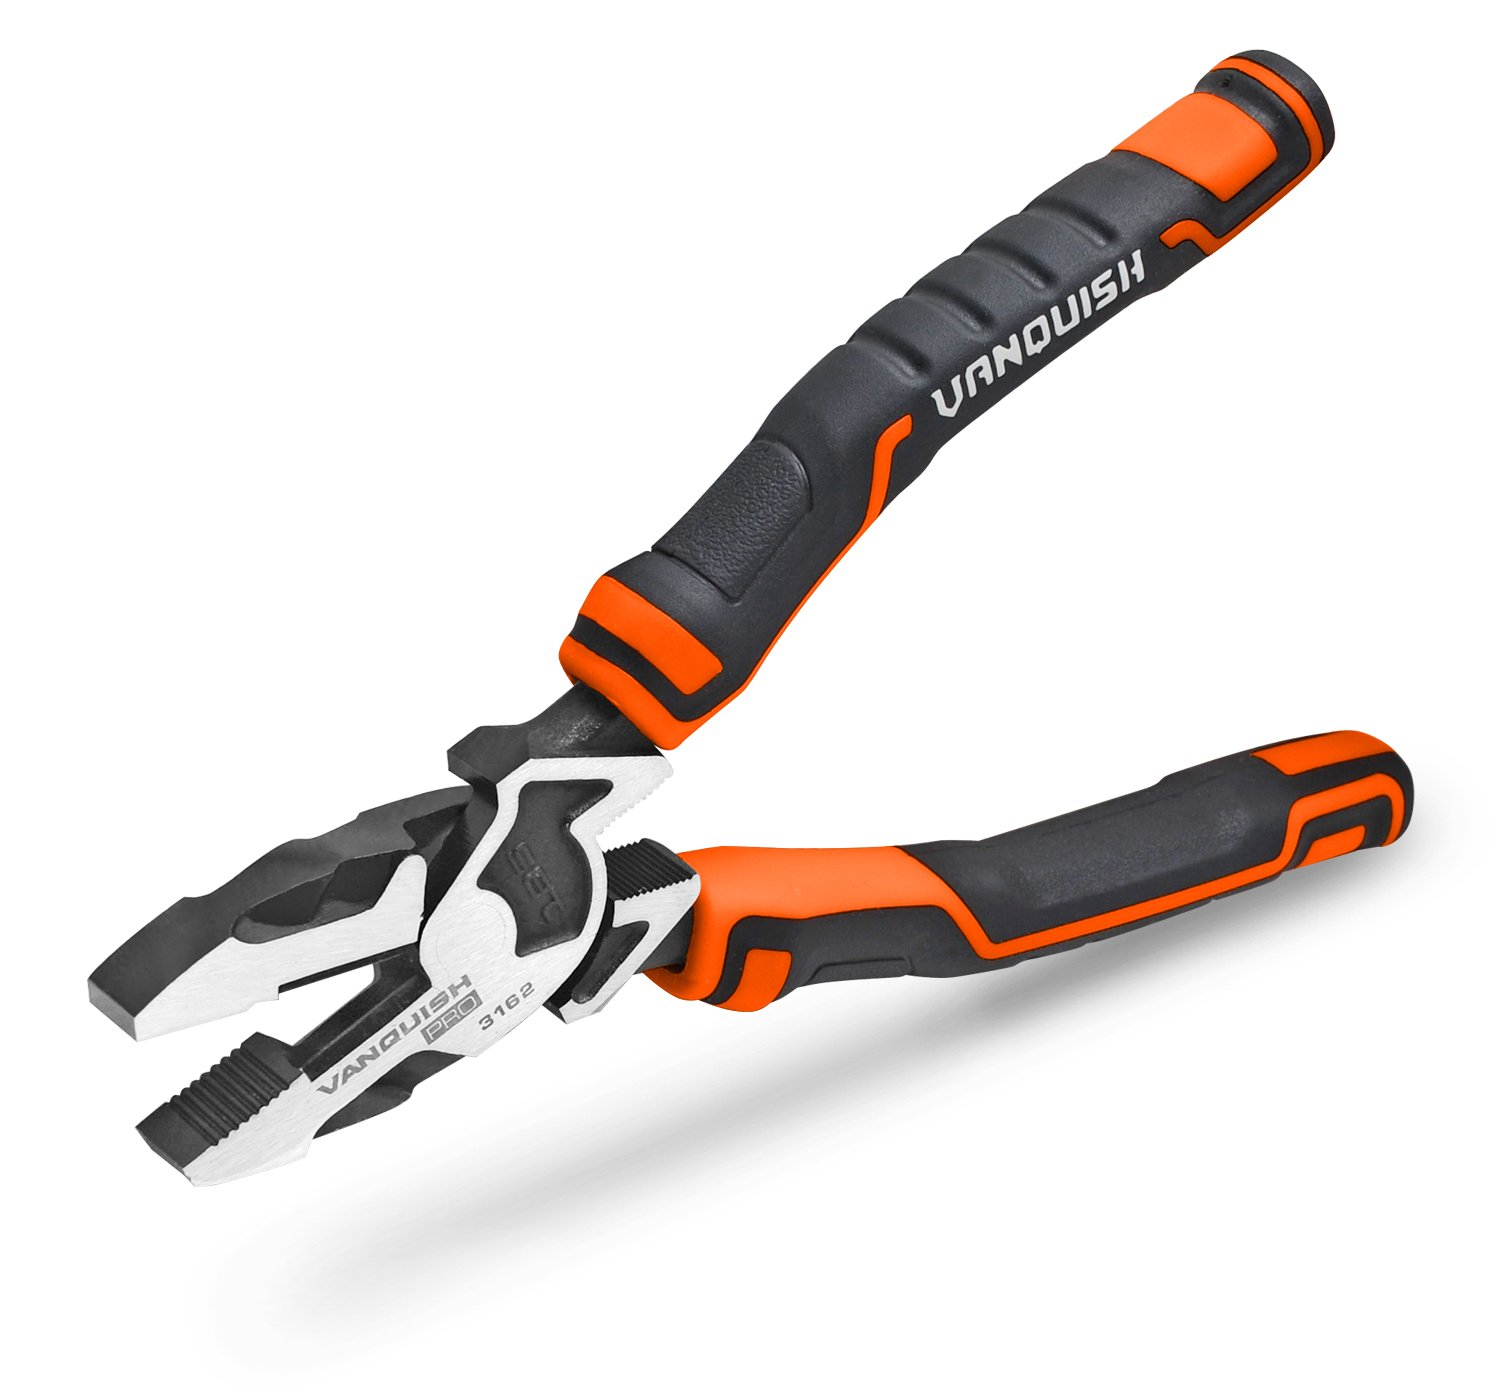 VANQUISH 3162 High-Leverage Linesman Pliers - 7''/ 175mm